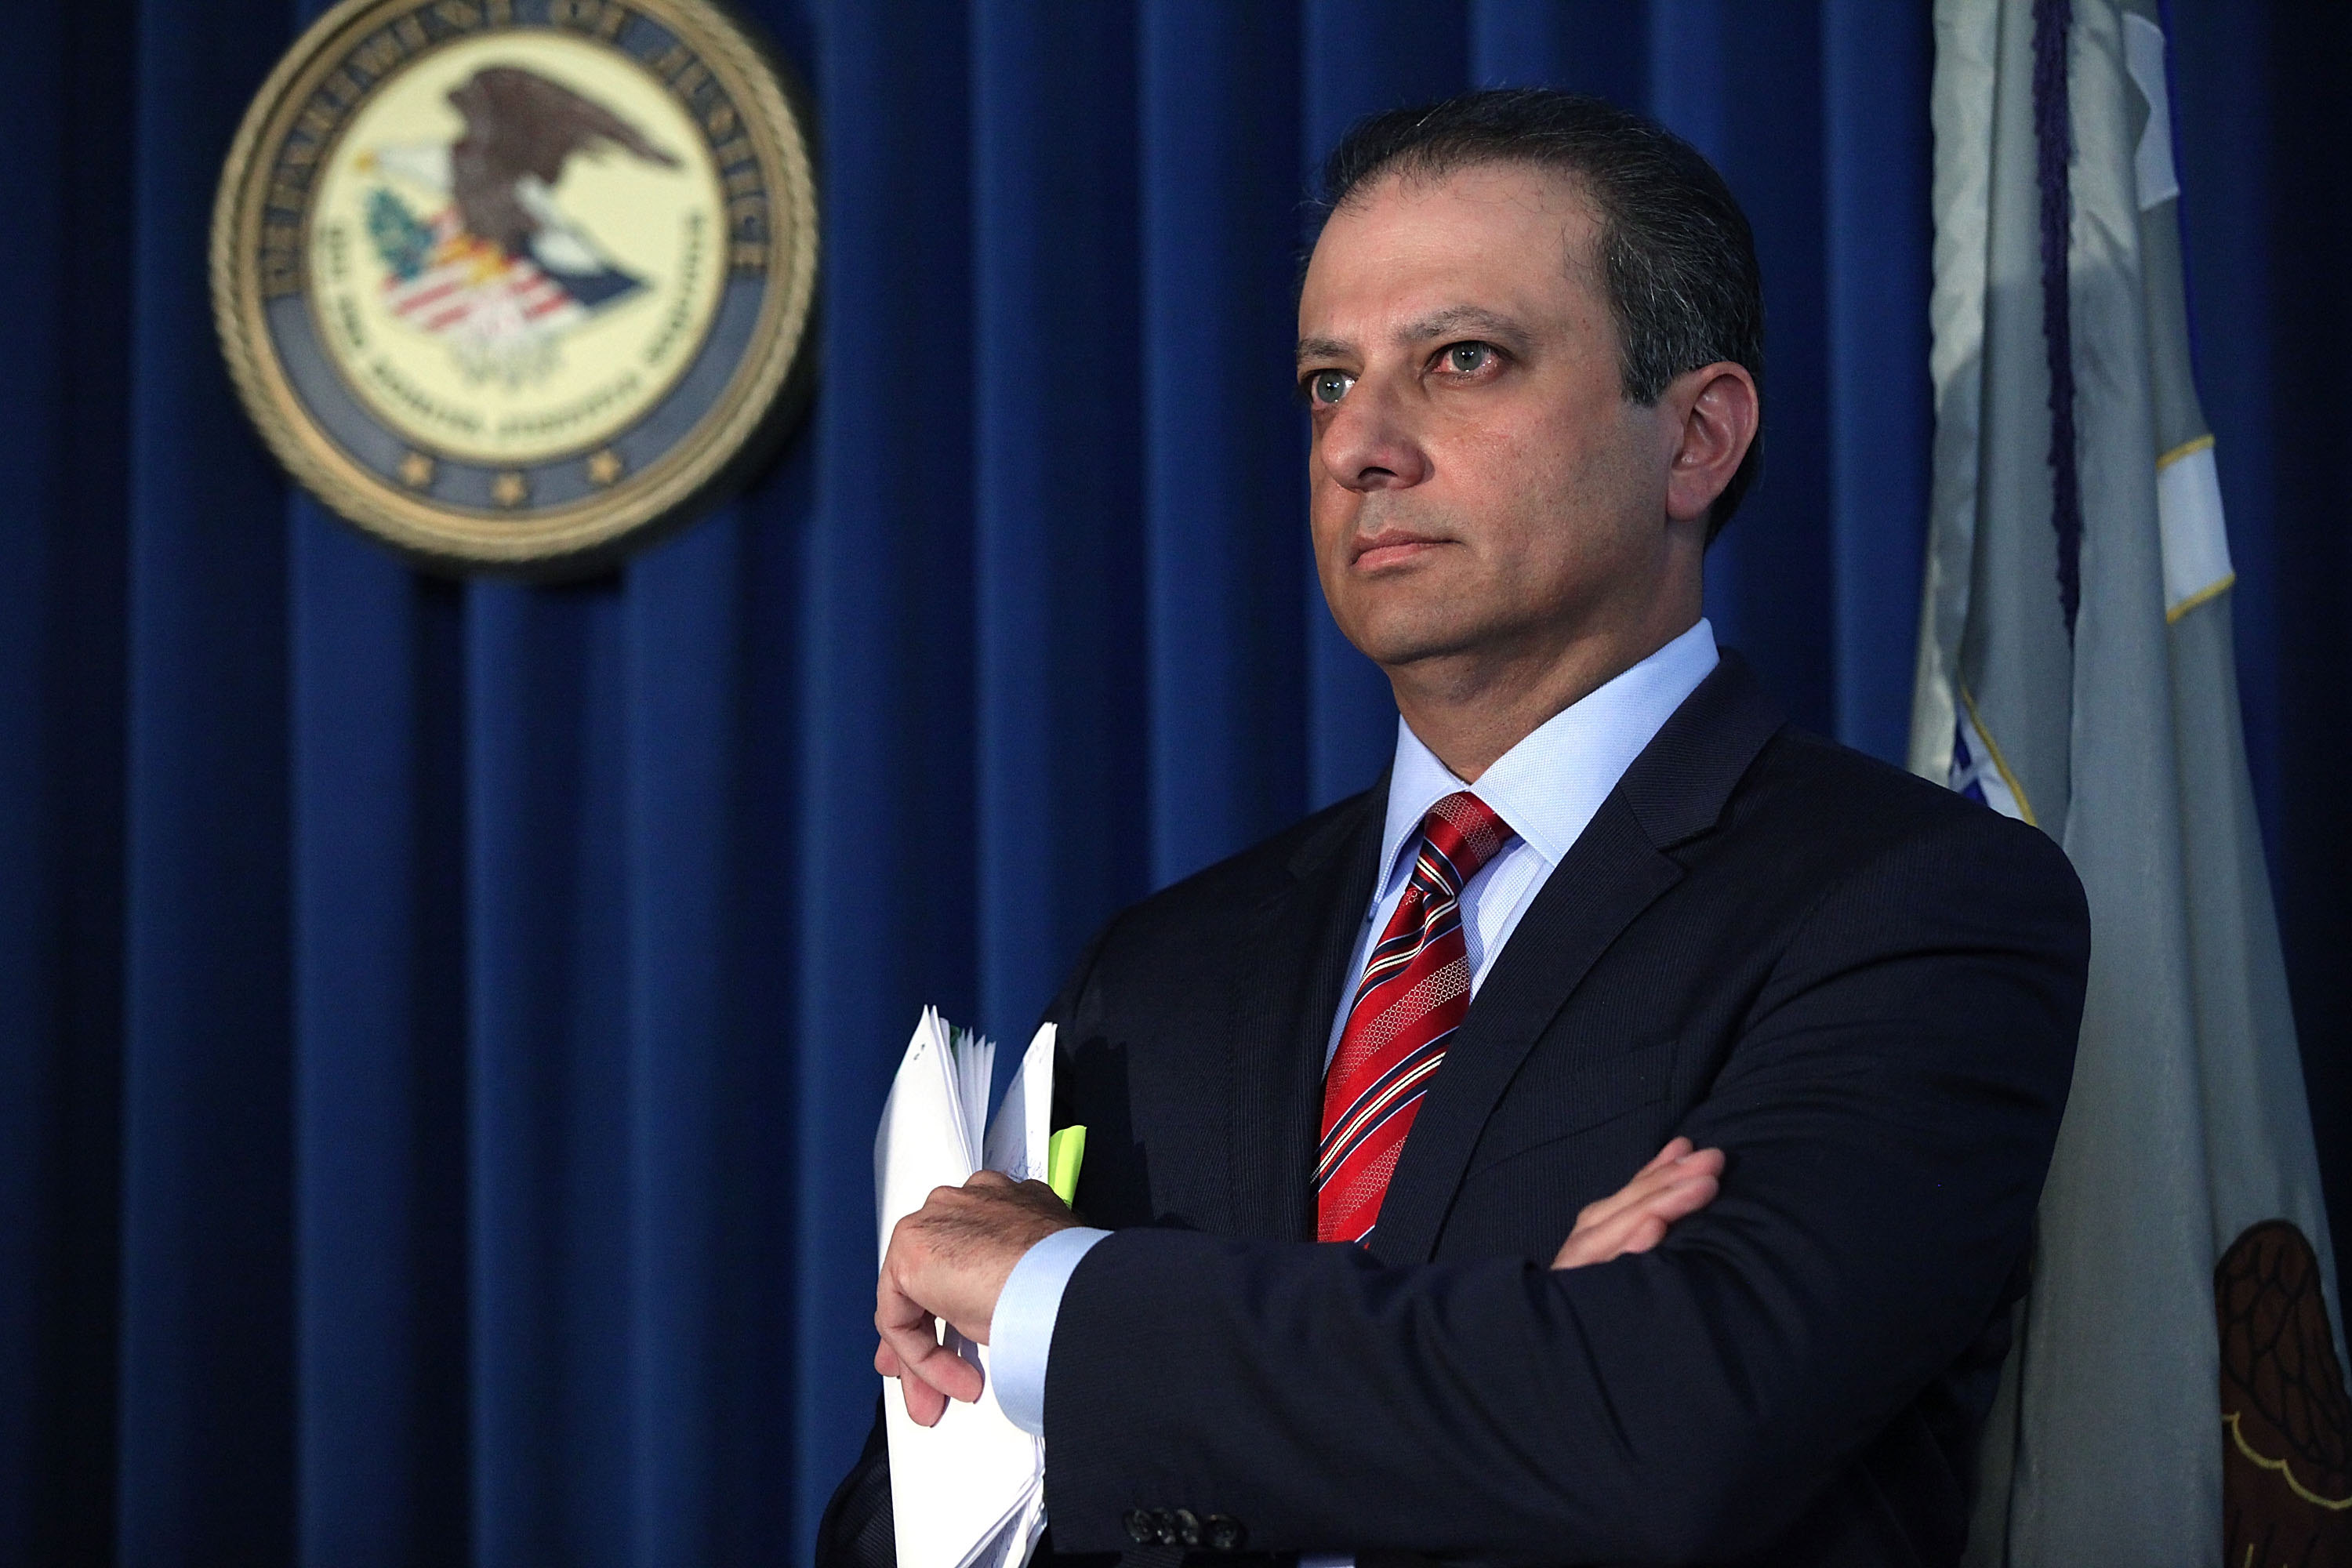 U.S. Attorney Preet Bharara at a news conference in 2015 in New York City. (Getty Images)